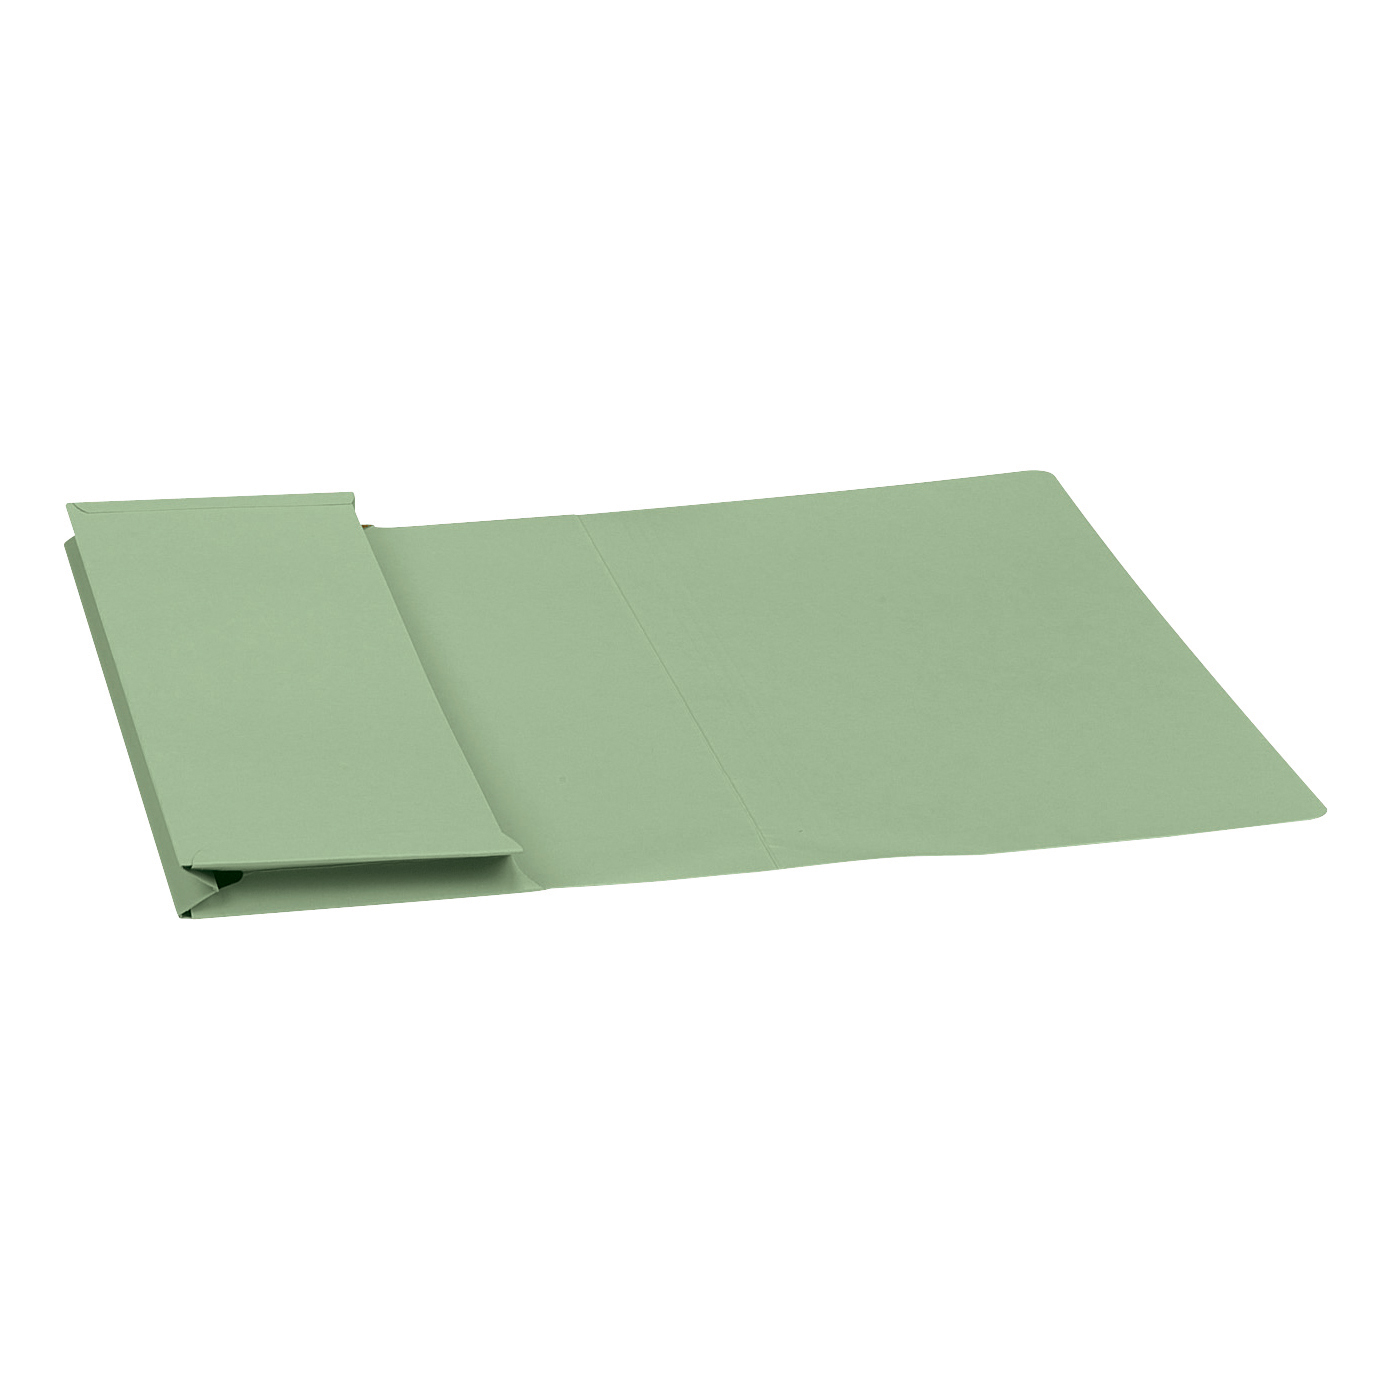 Guildhall Legal Document Wallet Full Flap 315gsm W356xH254mm Green Ref PW3-GRNZ Pack 50